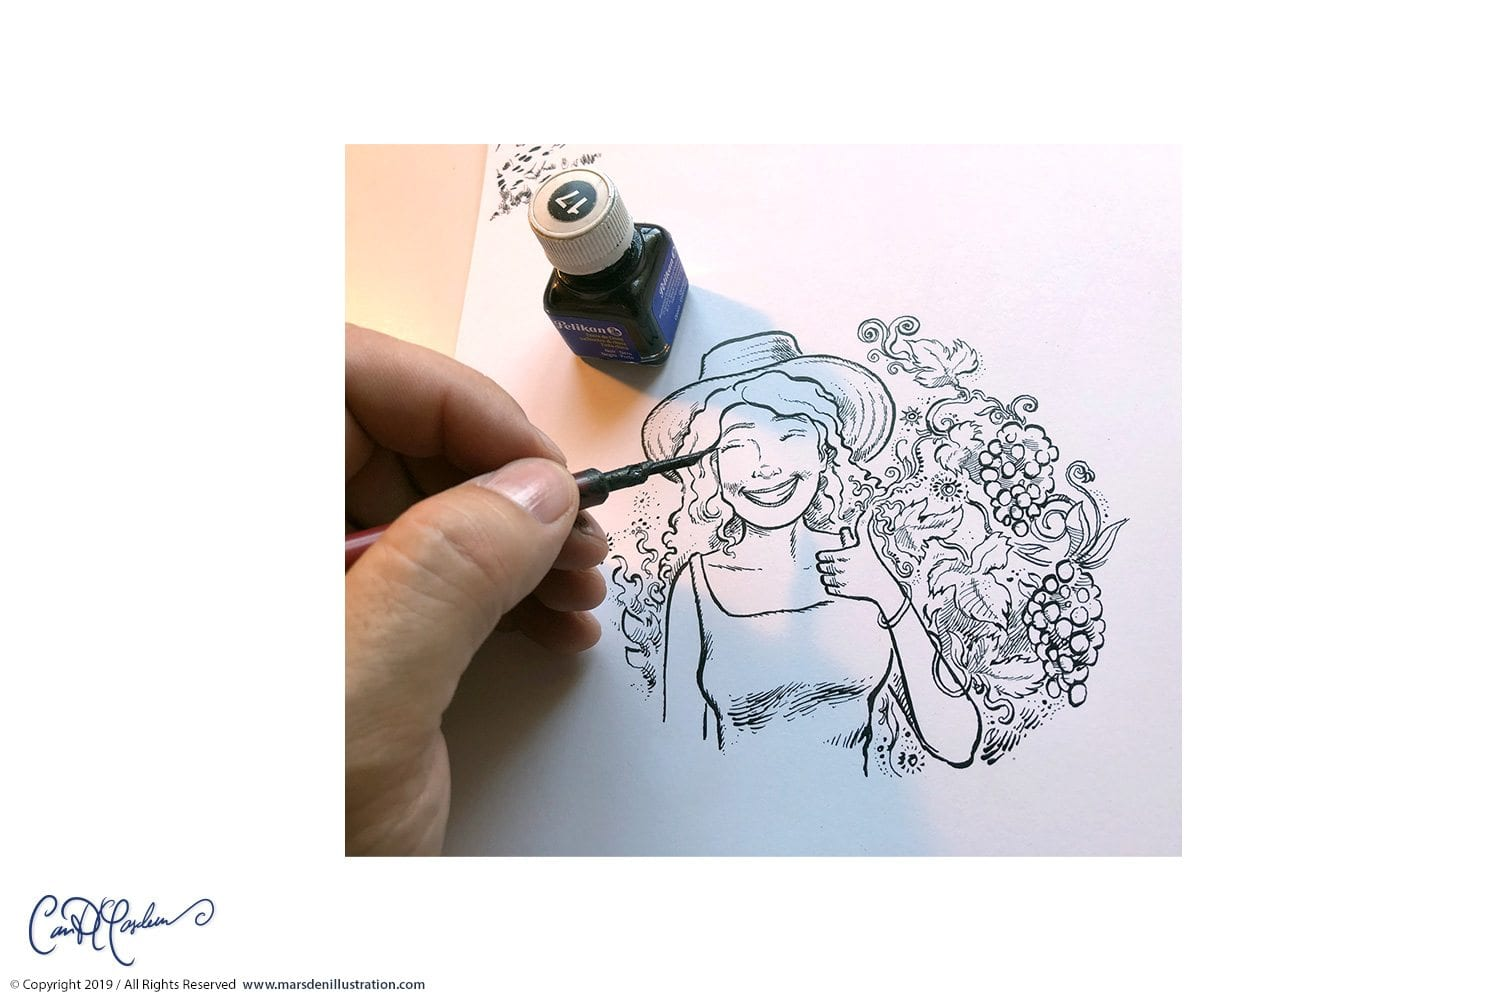 Dip Pen and Ink - old fashioned artwork